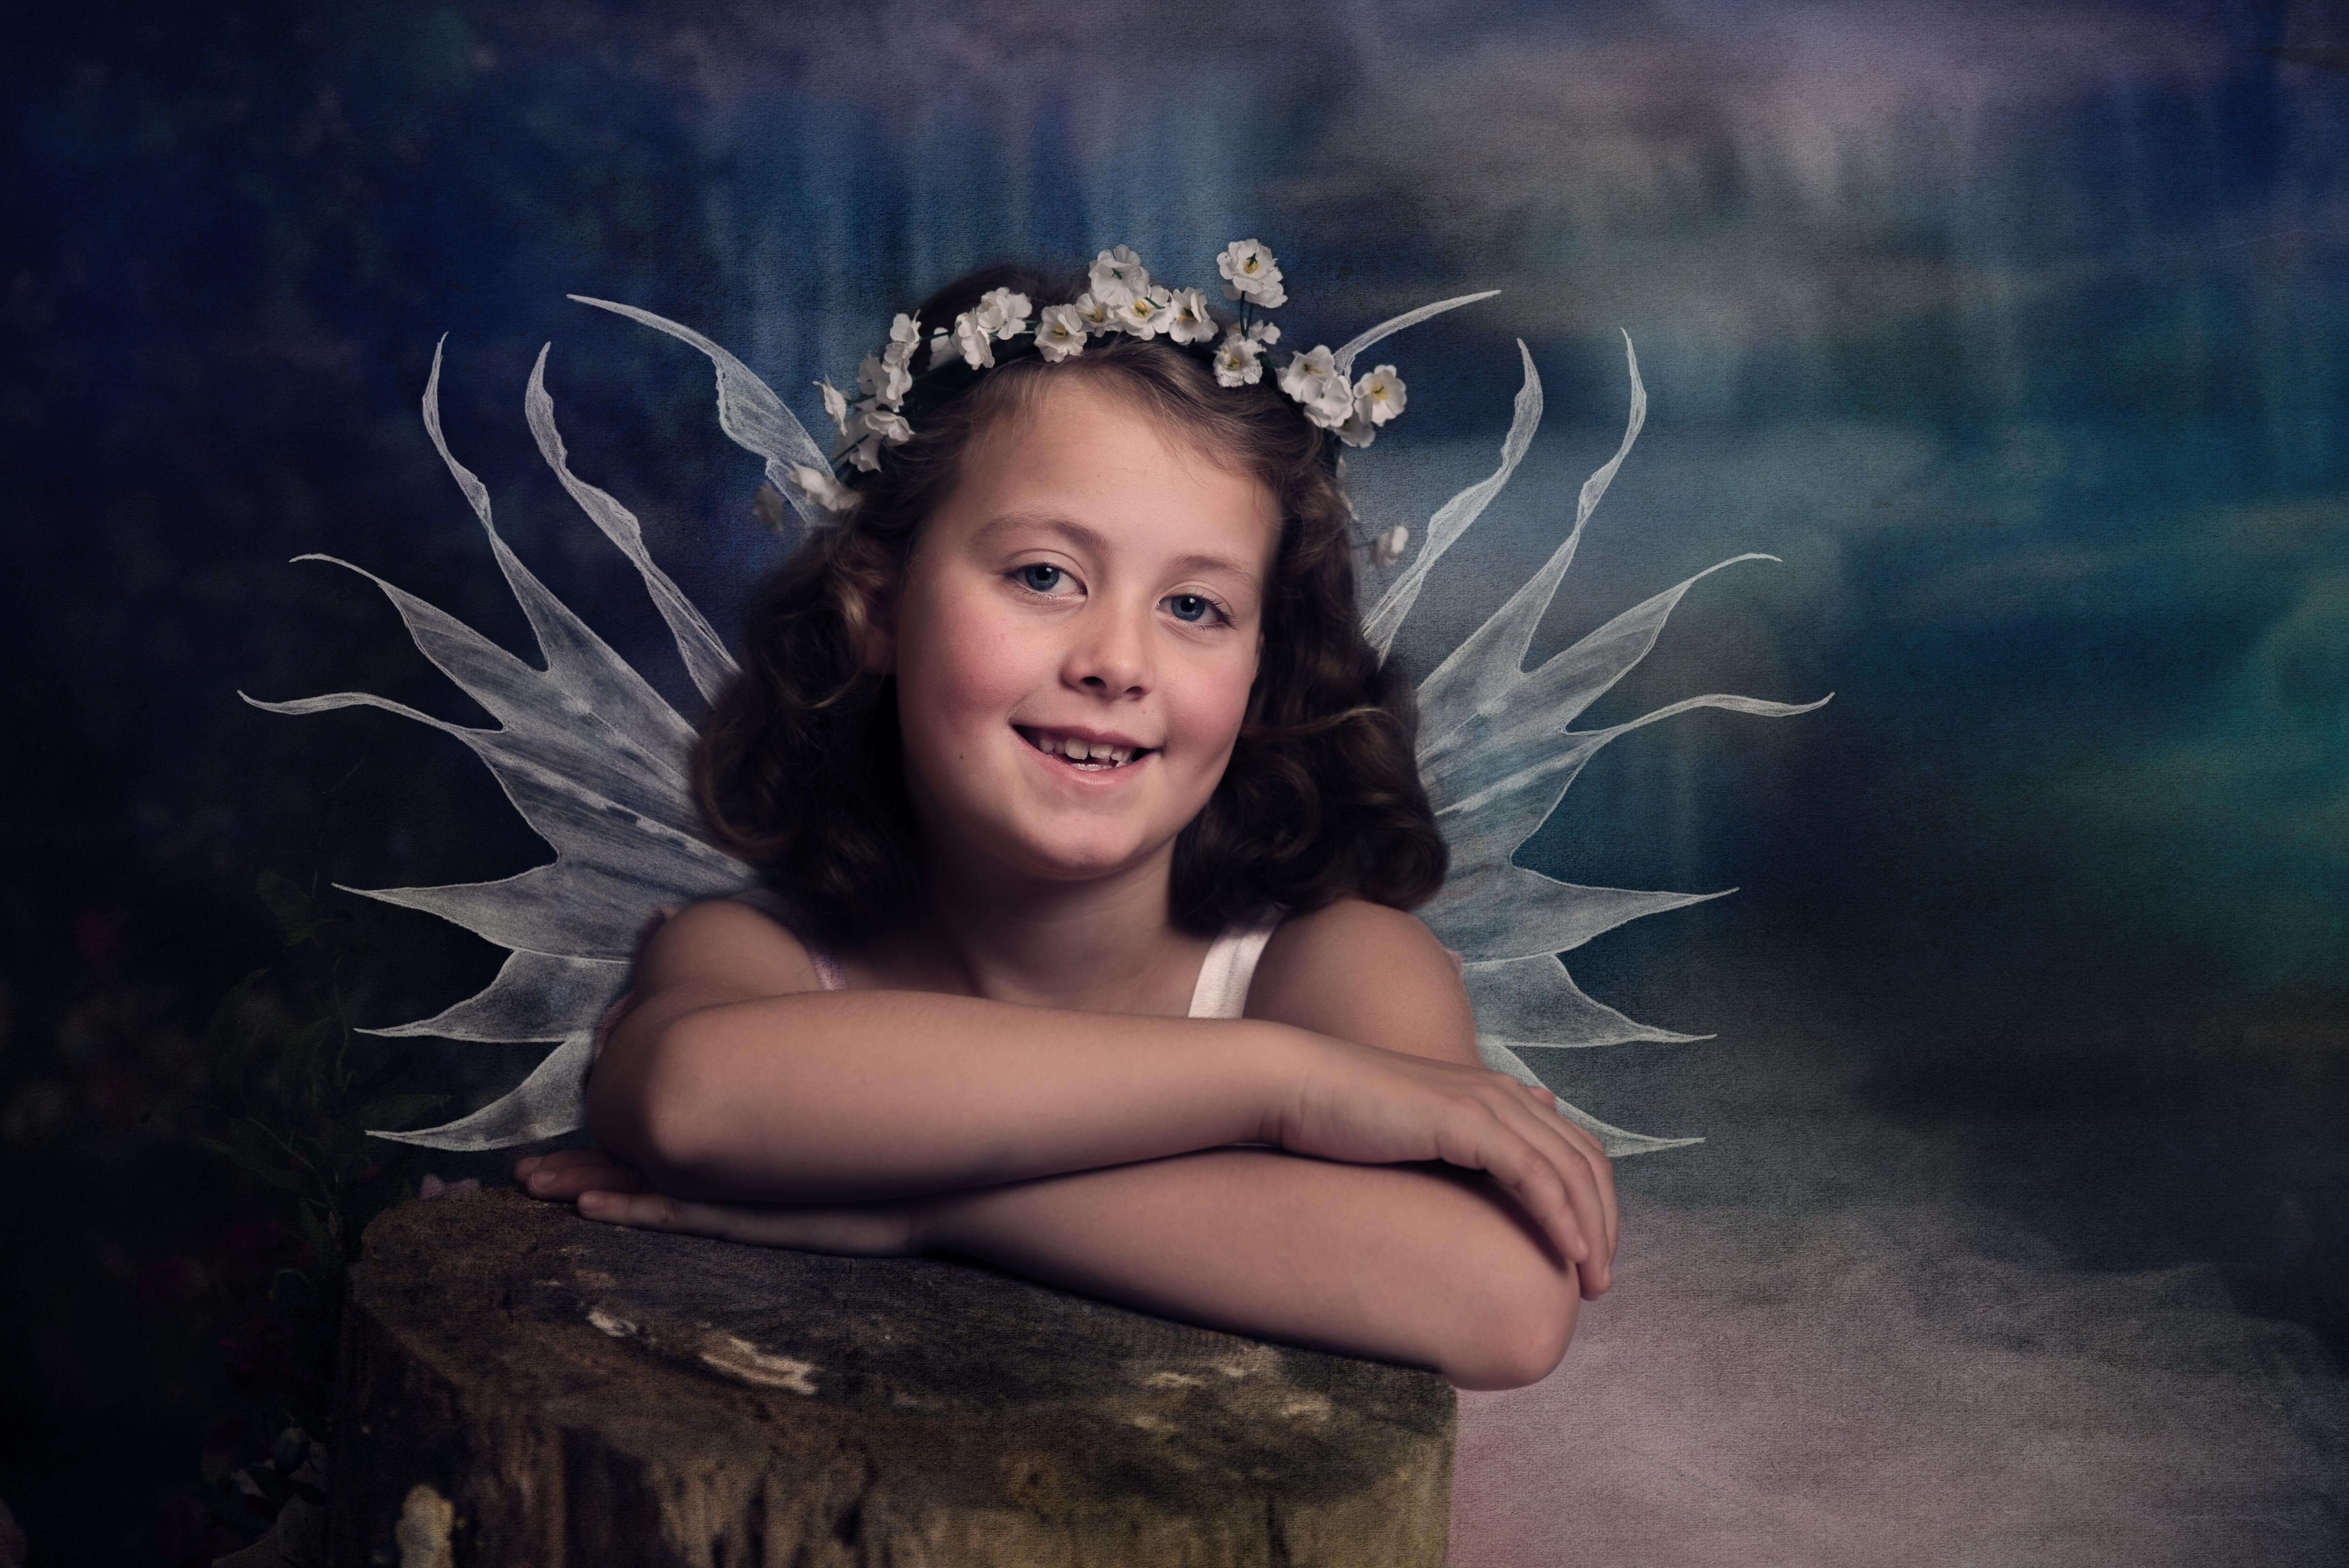 Fairies and Elves Gallery 19